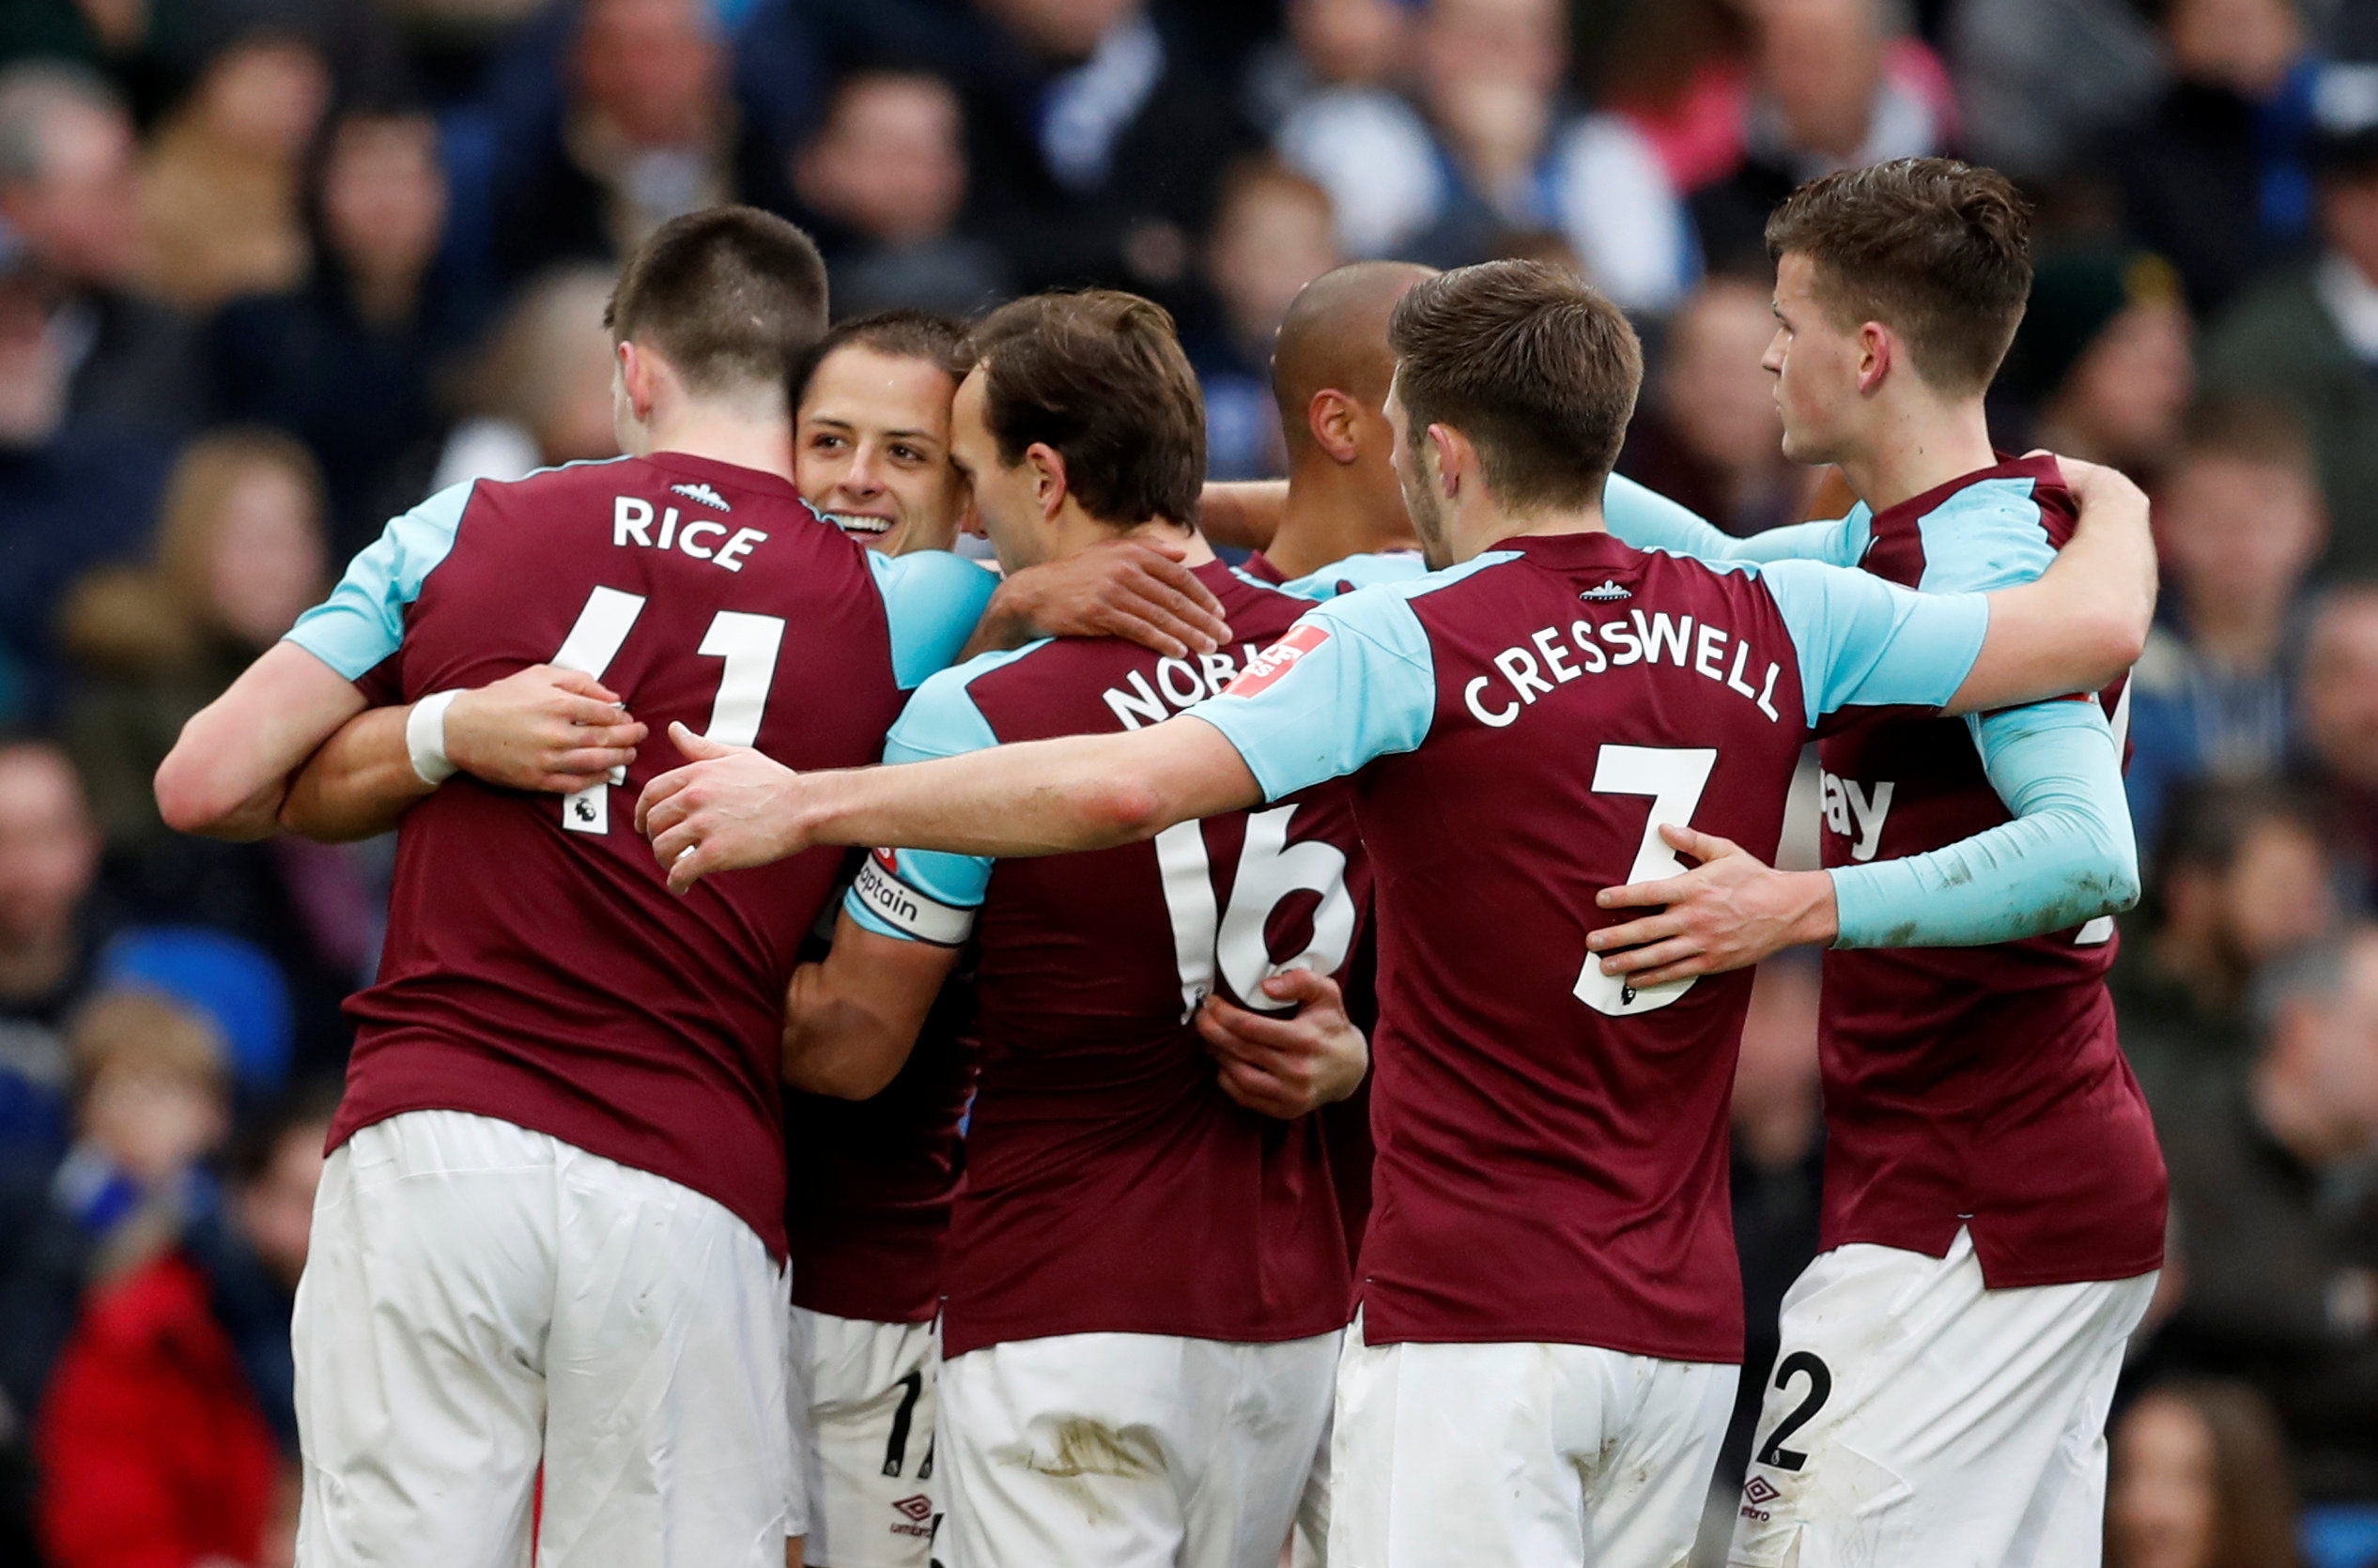 West Ham United 2018/19 salaries